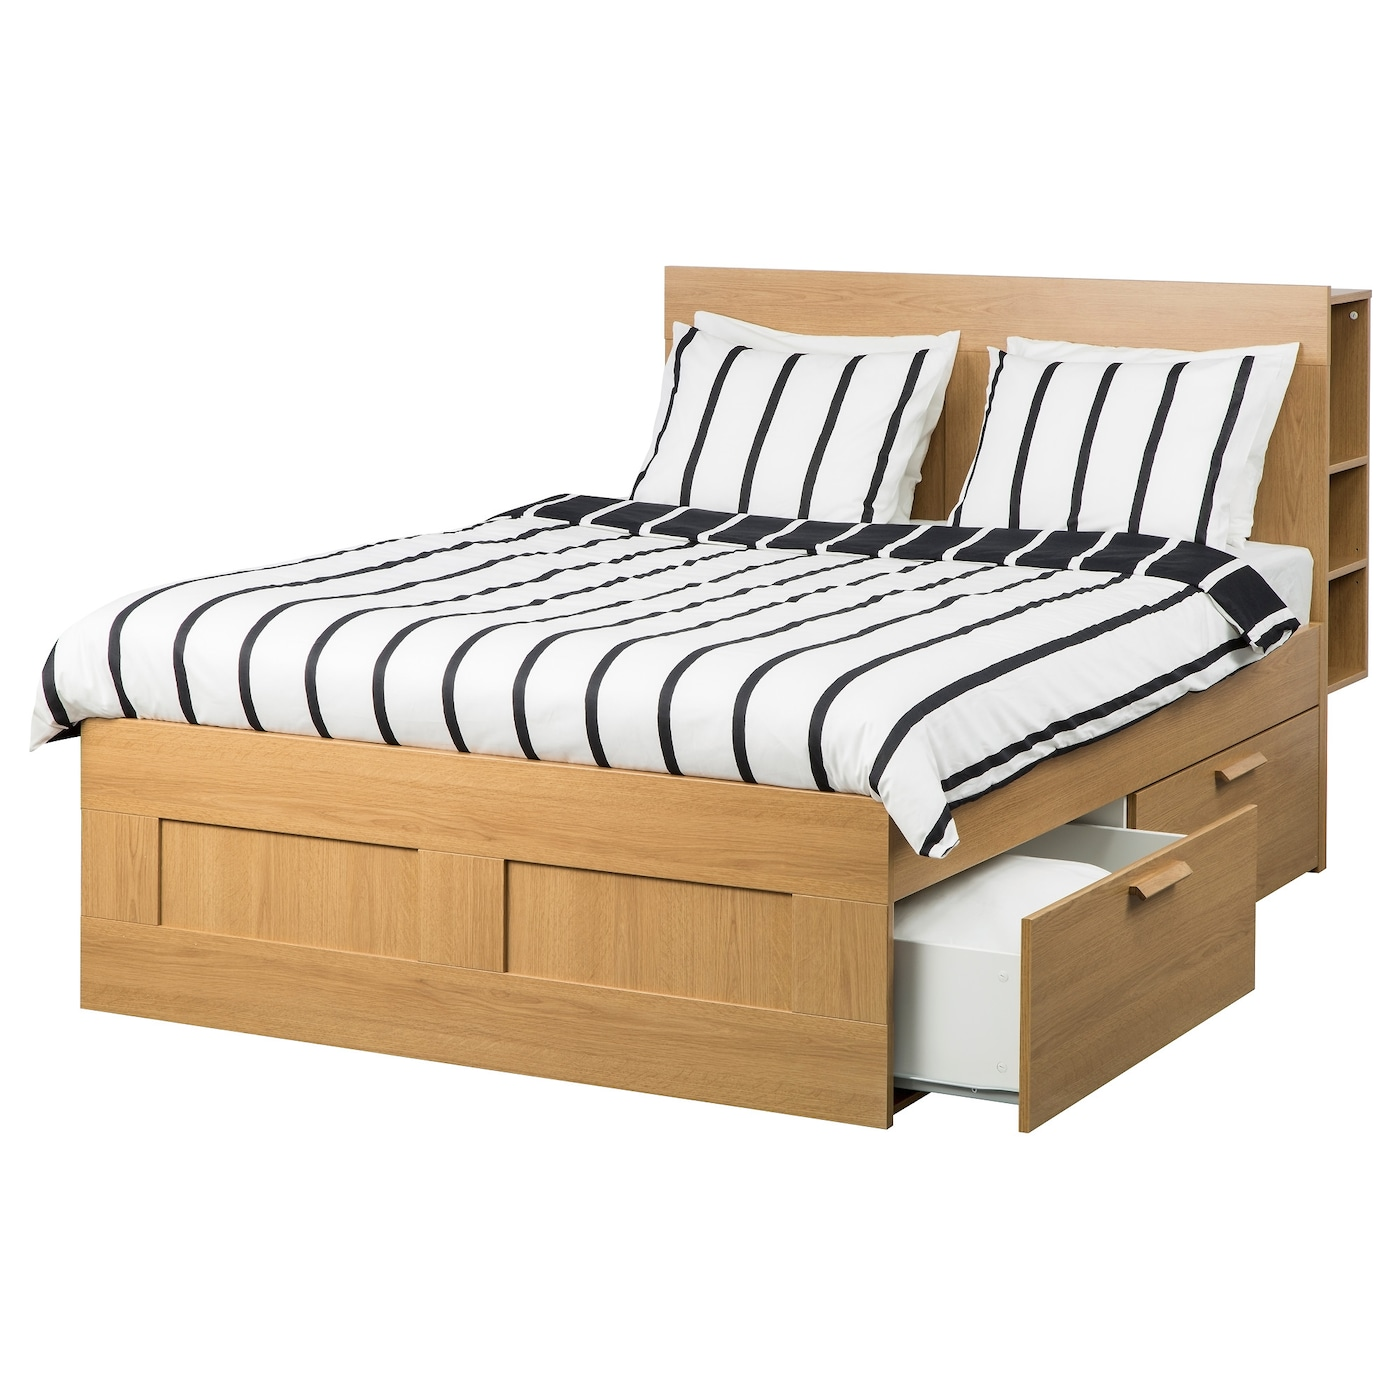 Brimnes Bed Frame W Storage And Headboard Oak Effect Lur Y